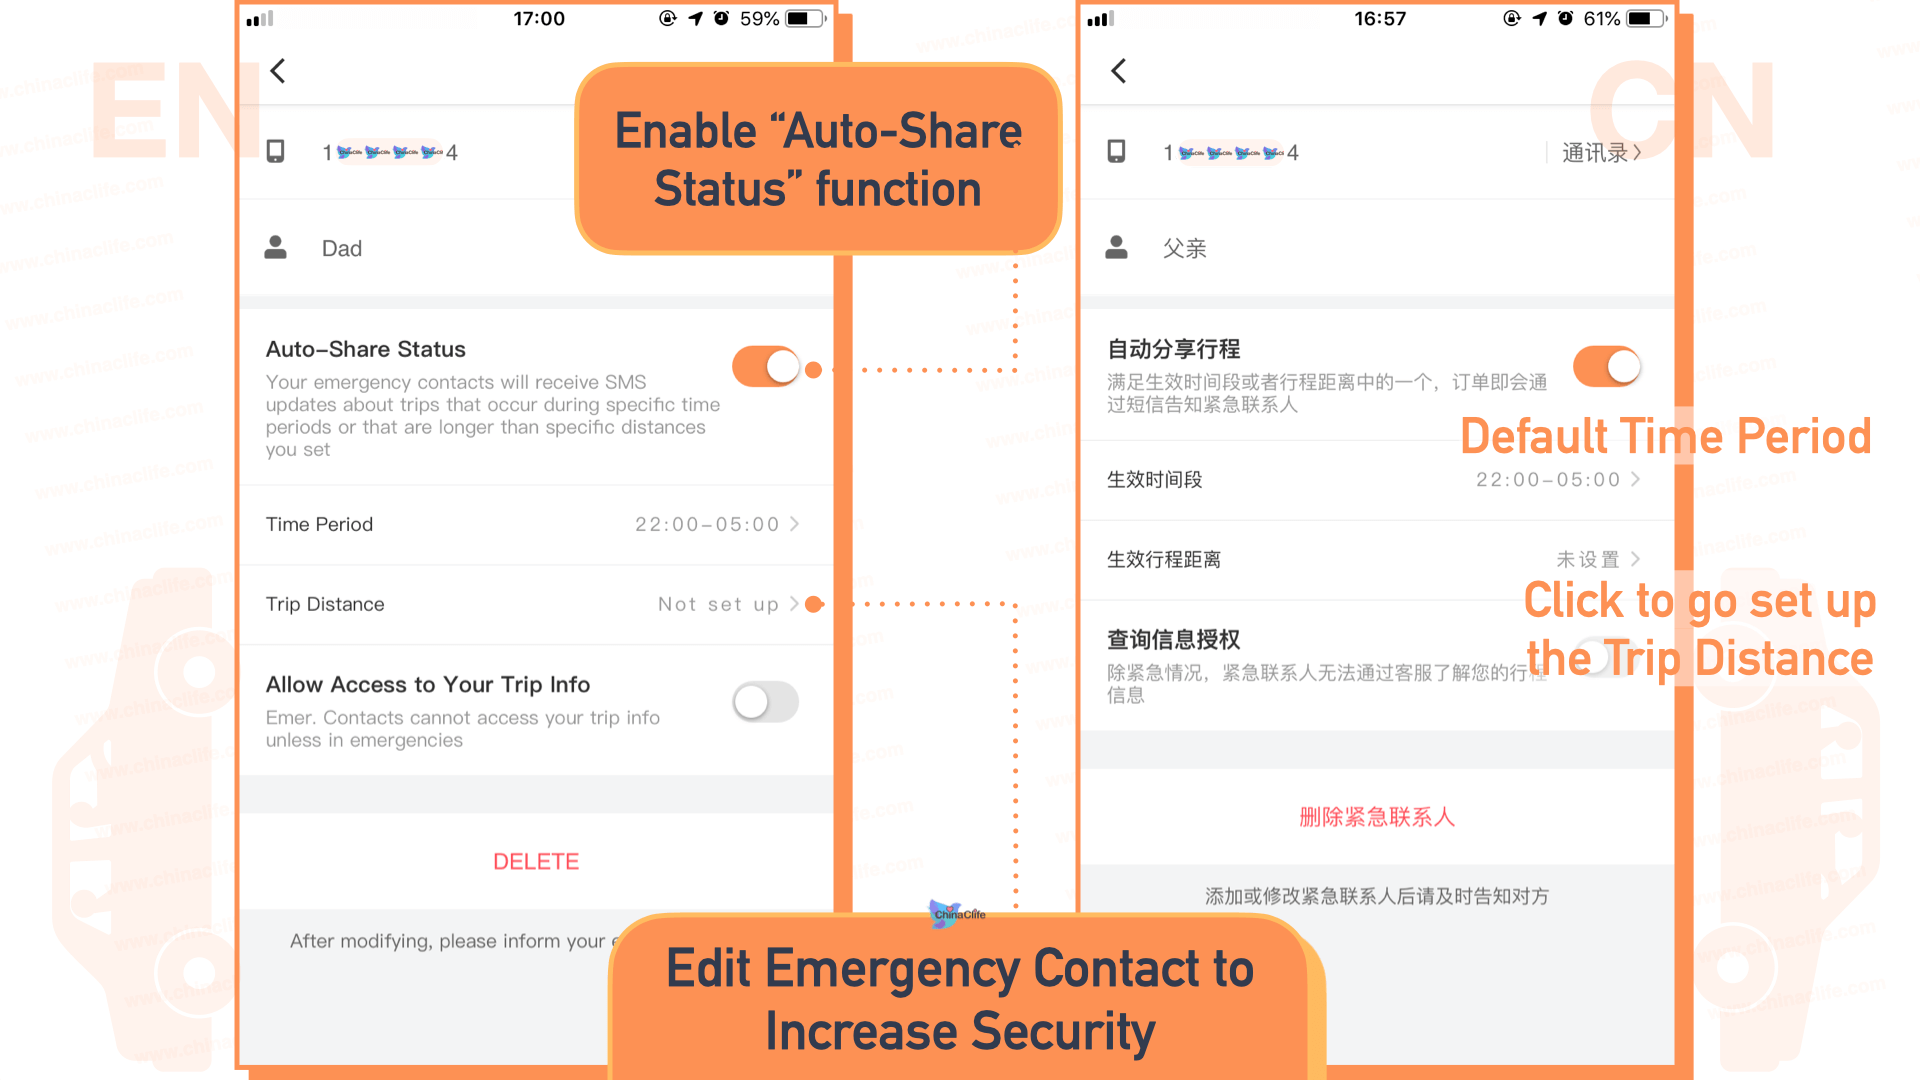 Learn How to Use DiDi More Safely to Hail a Ride in China Cities, Especially for Overseas Females/Expats/Tourists.